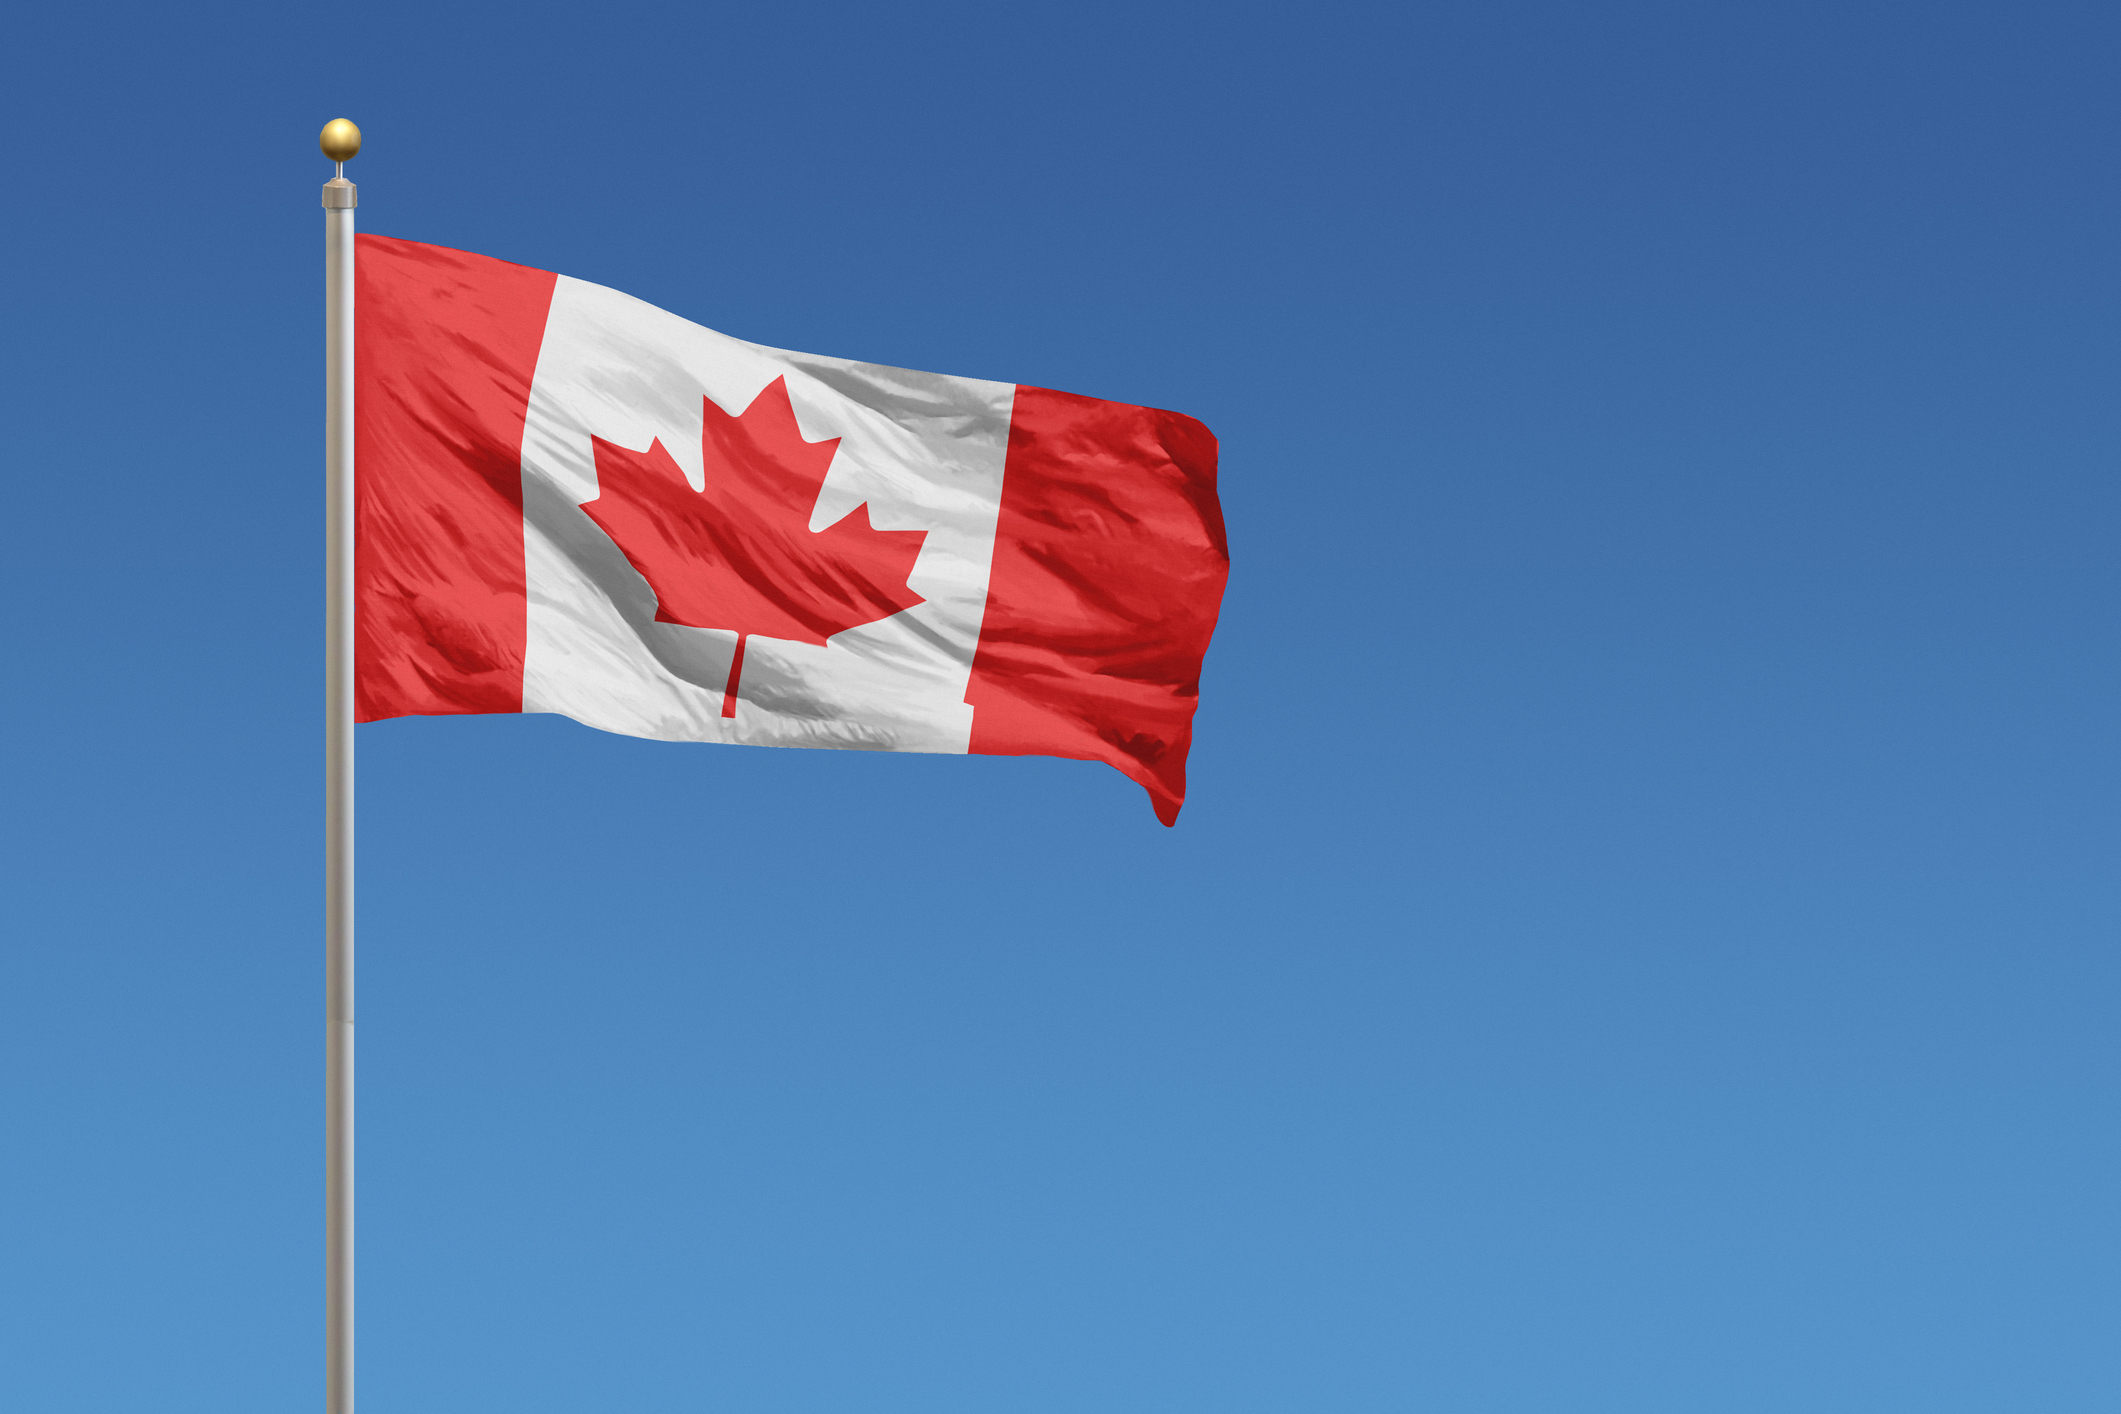 Flag of Canada in front of a clear blue sky